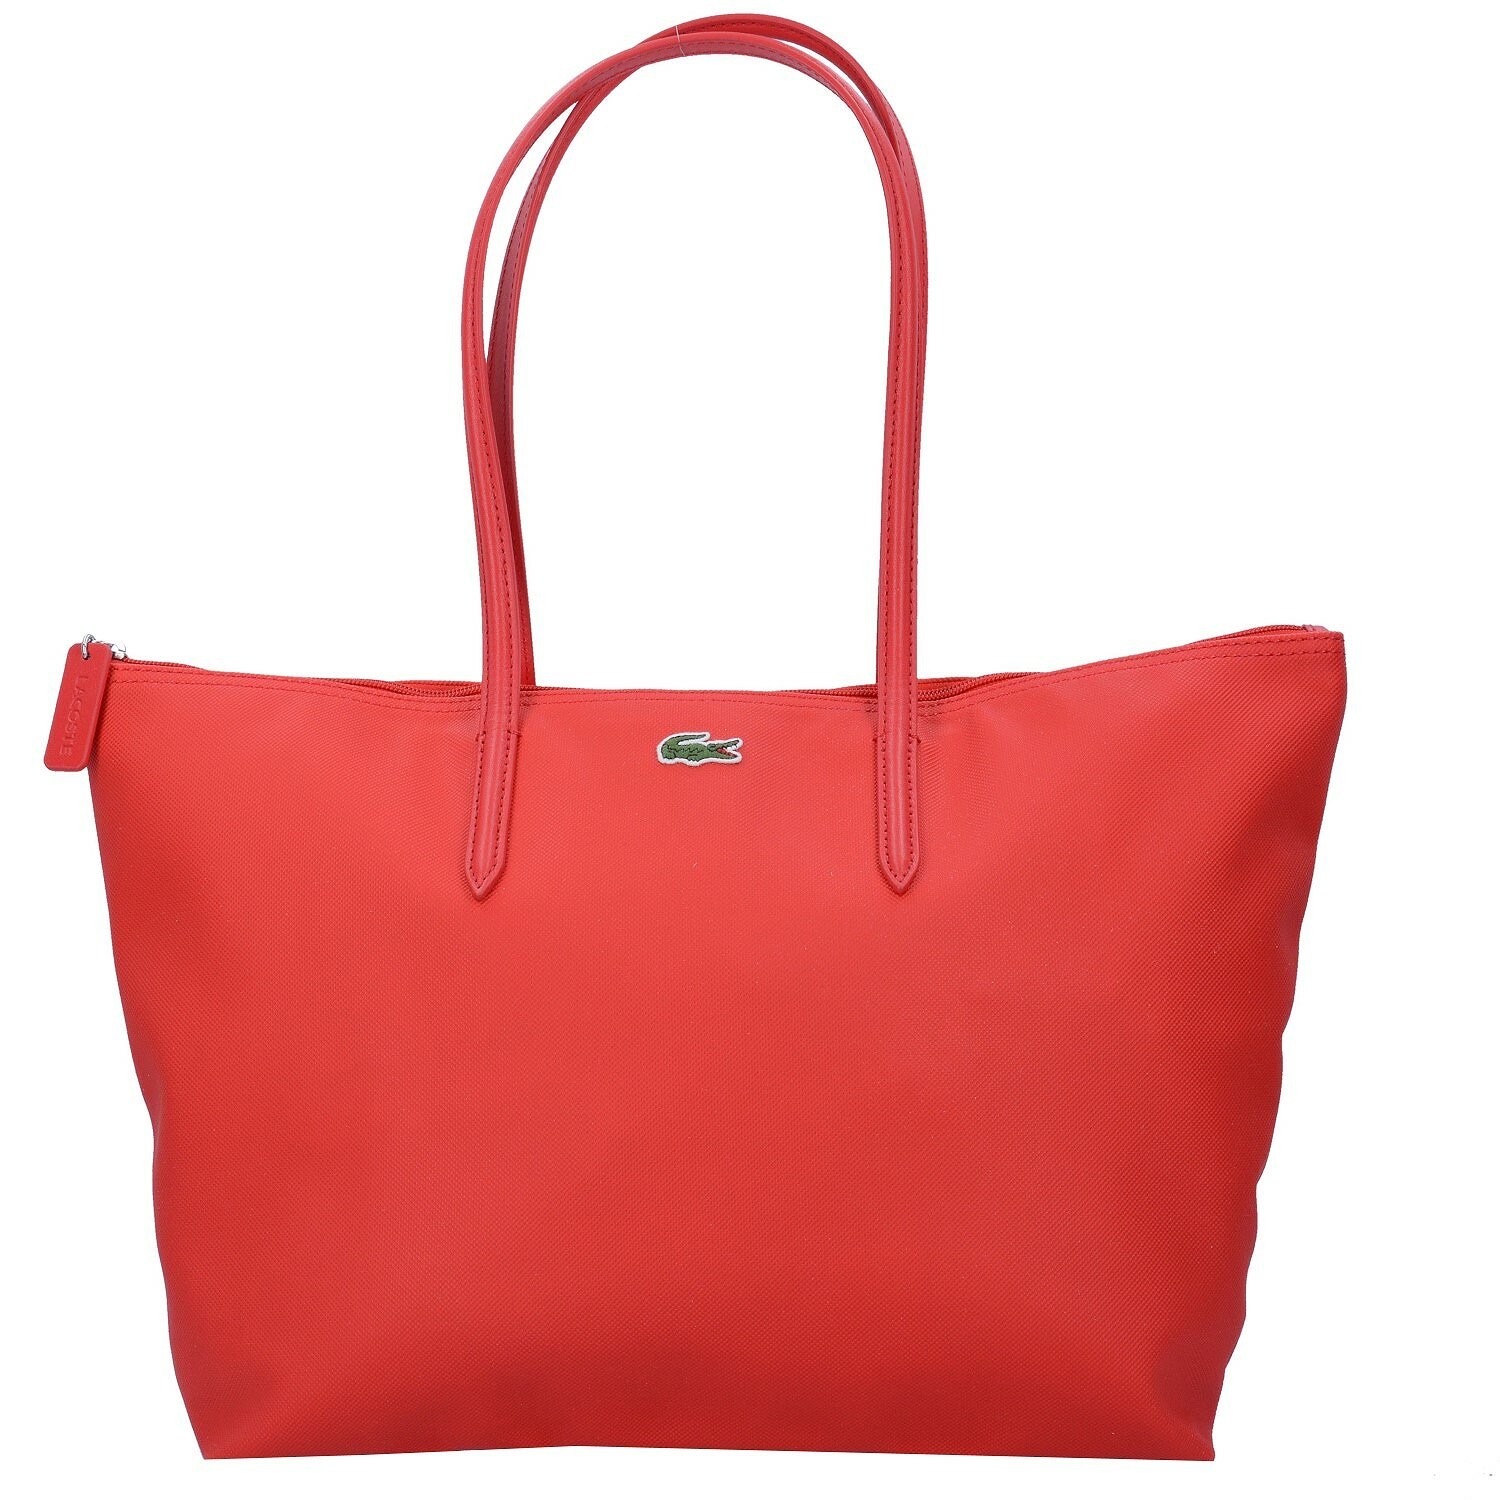 Lacoste Sac Femme L1212 Concept L Sac à main Fourre-tout 47 cm High Risk Red lih04